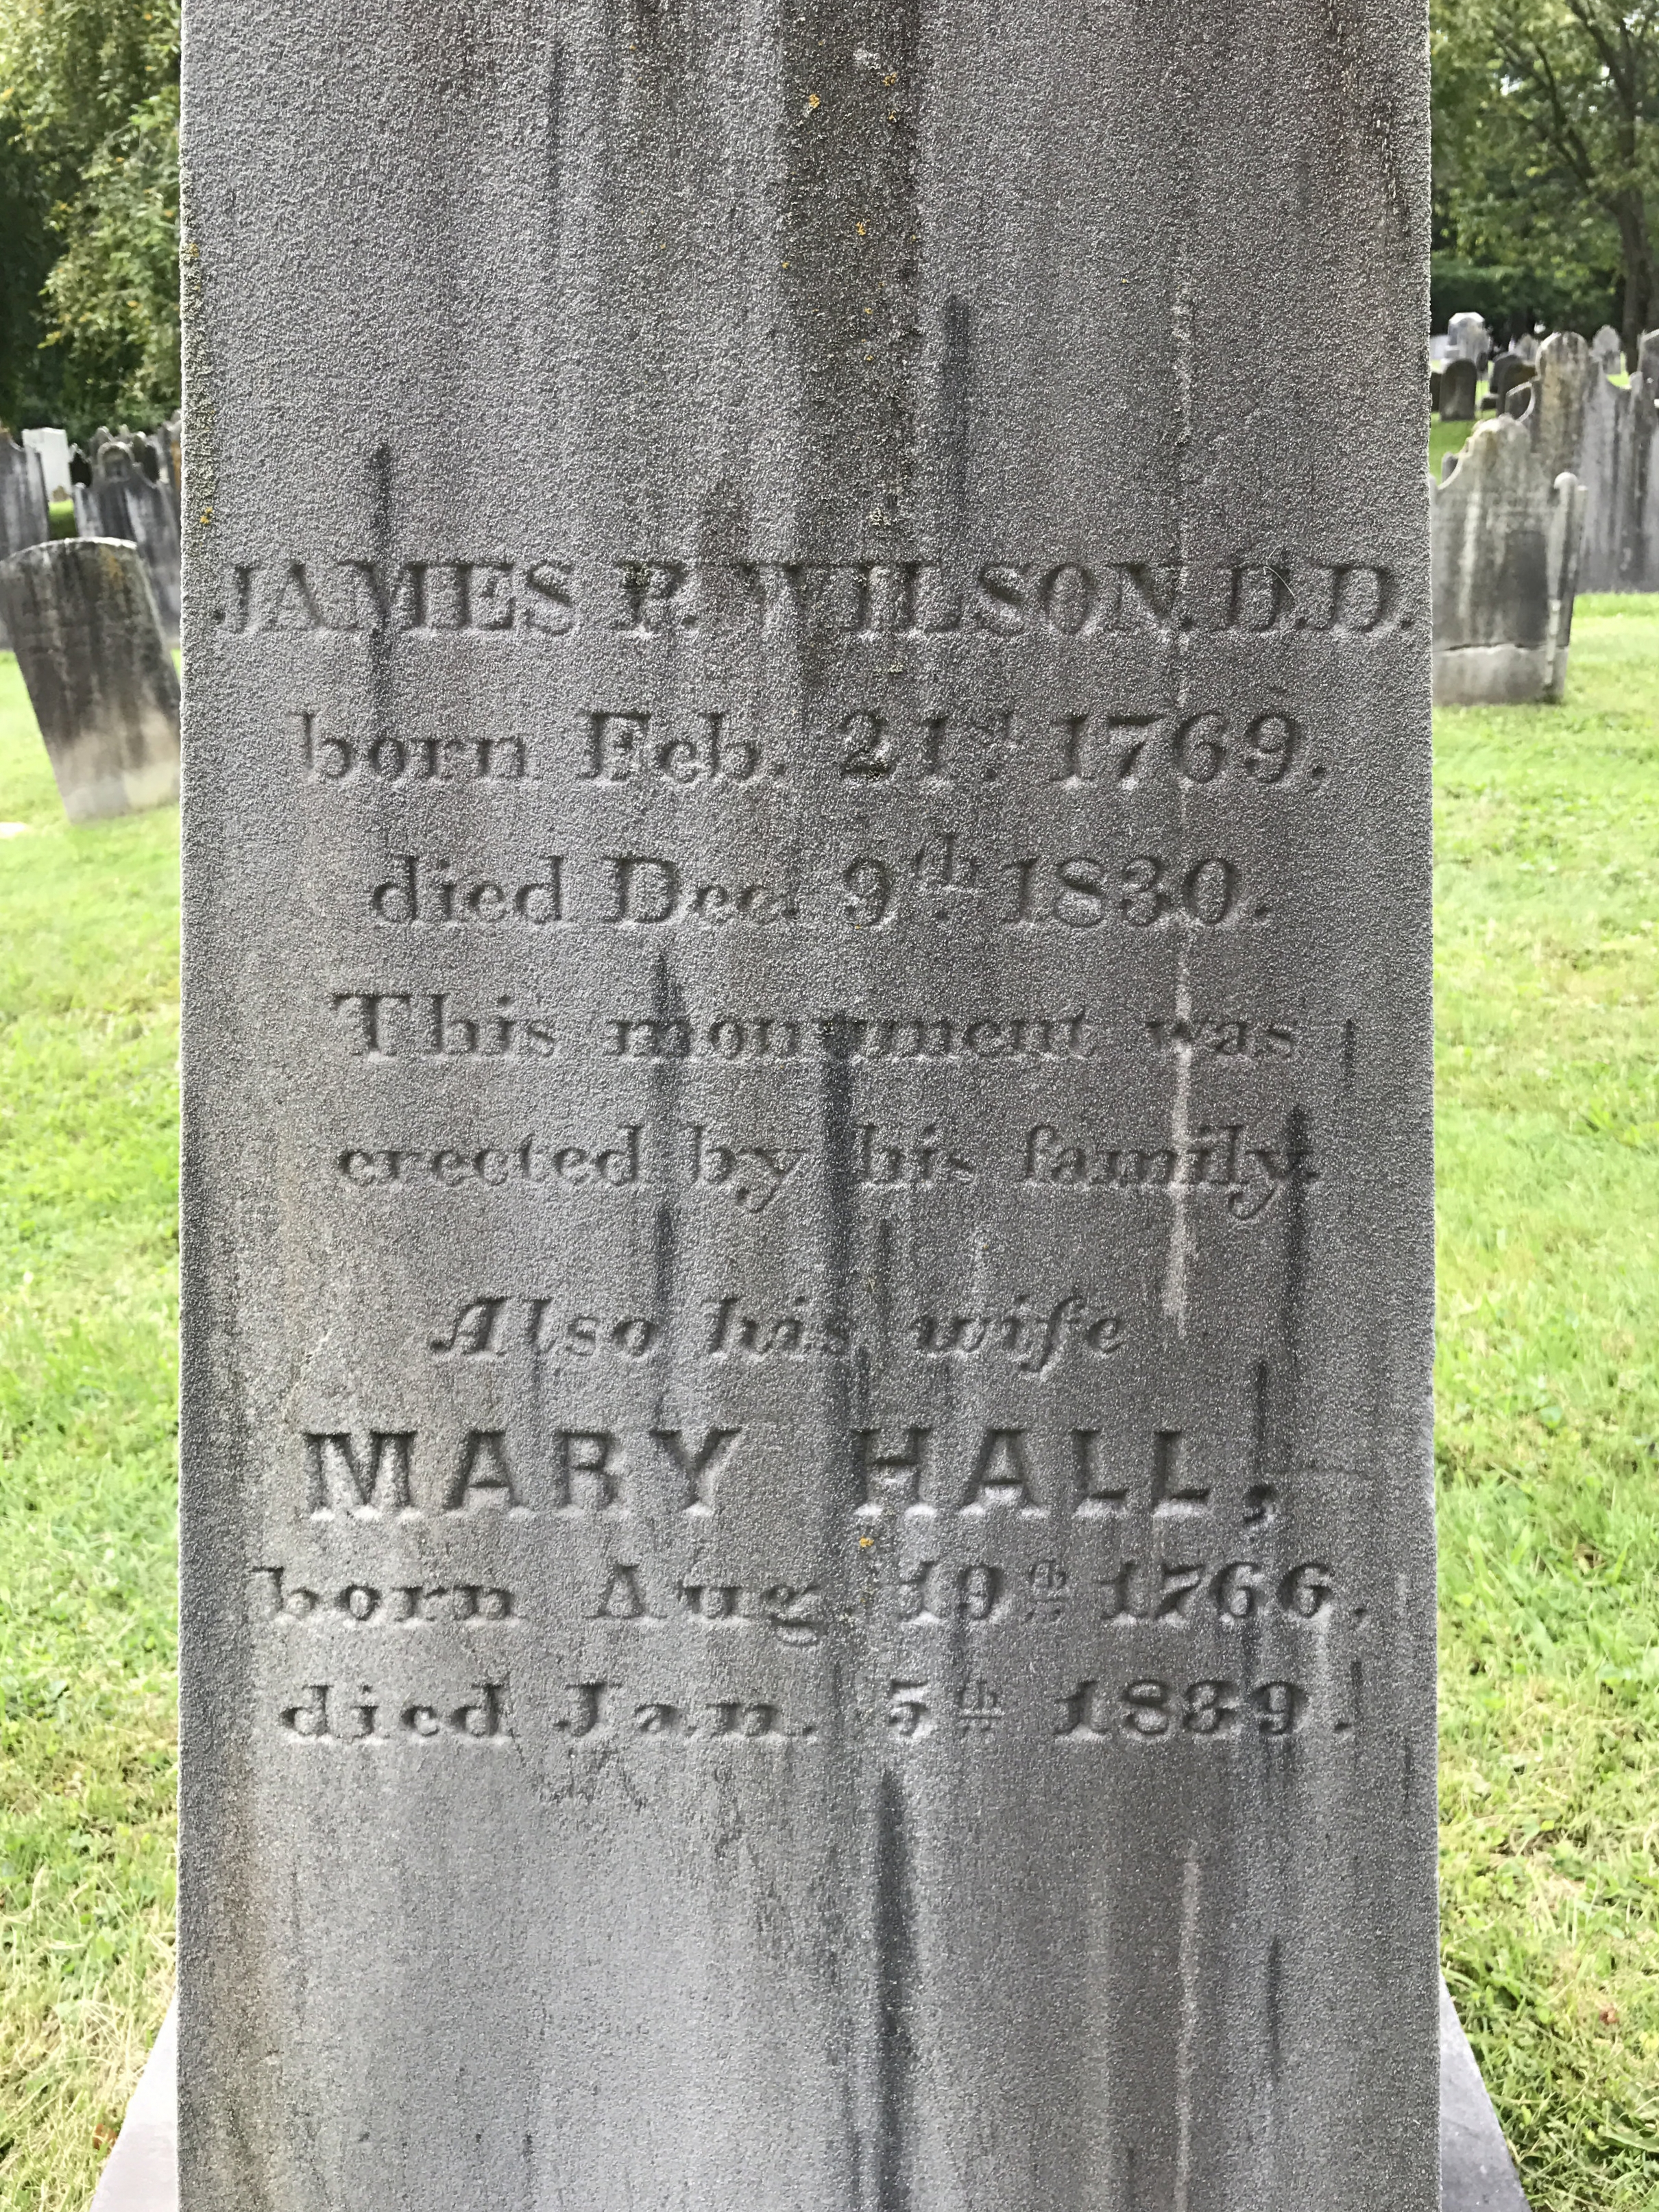 James Patriot Wilson, Sr. is buried at Neshaminy Cemetery, Hartsville, Pennsylvania.